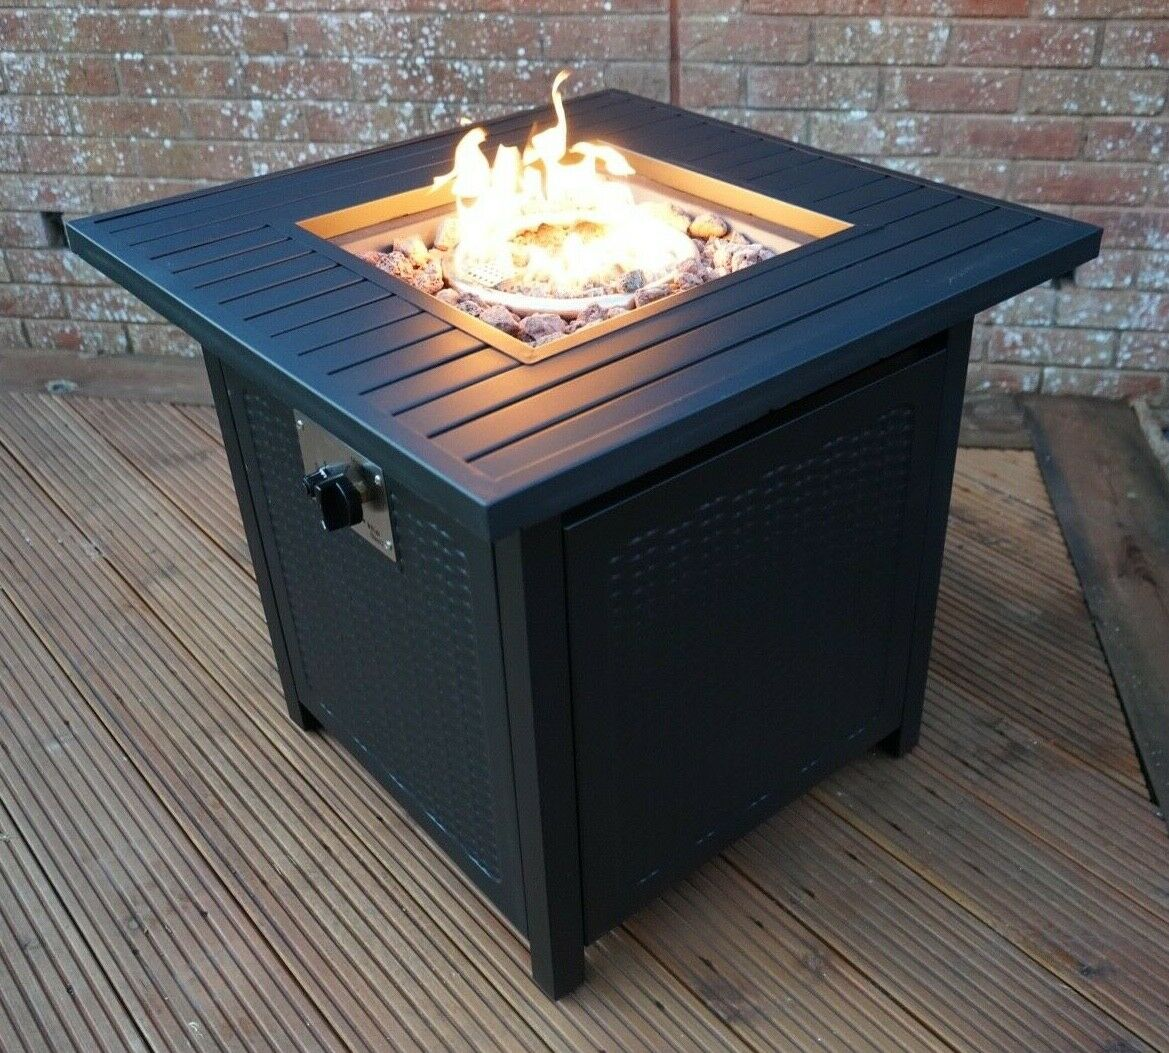 Gas Garden Fire Pit Outdoor Coffee Table Smokeless Stainless Steel Burner